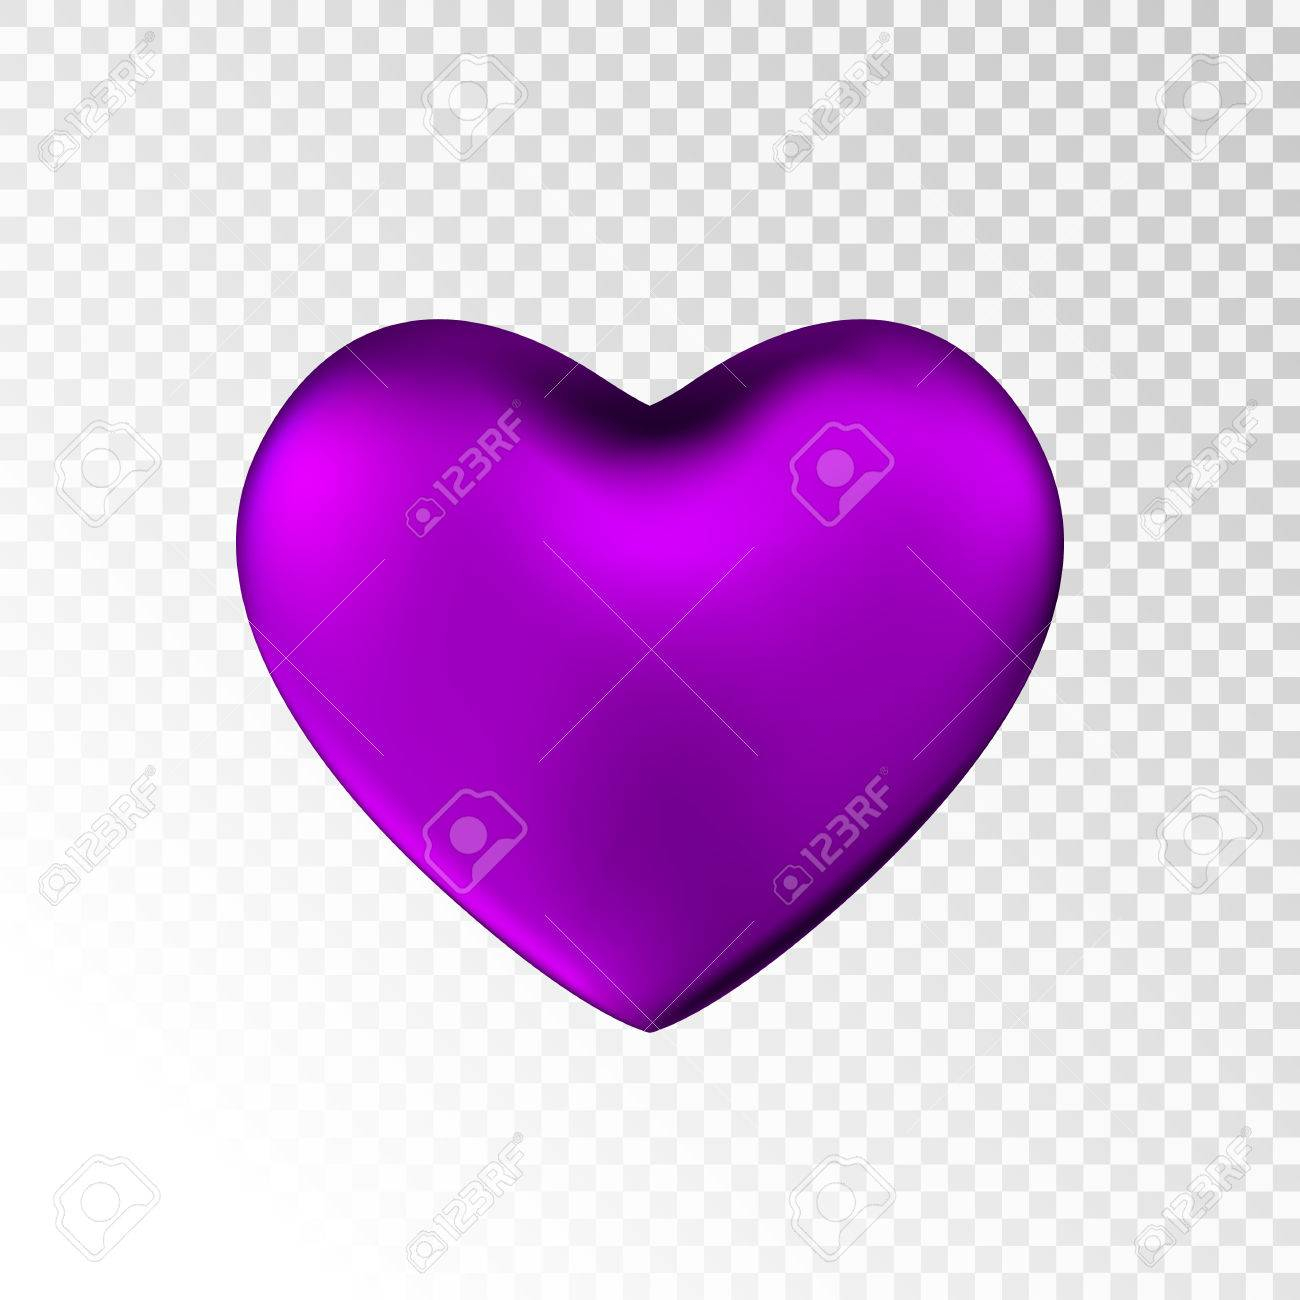 photo stock vector violet heart isolated on transparent background happy valentine s day greeting template